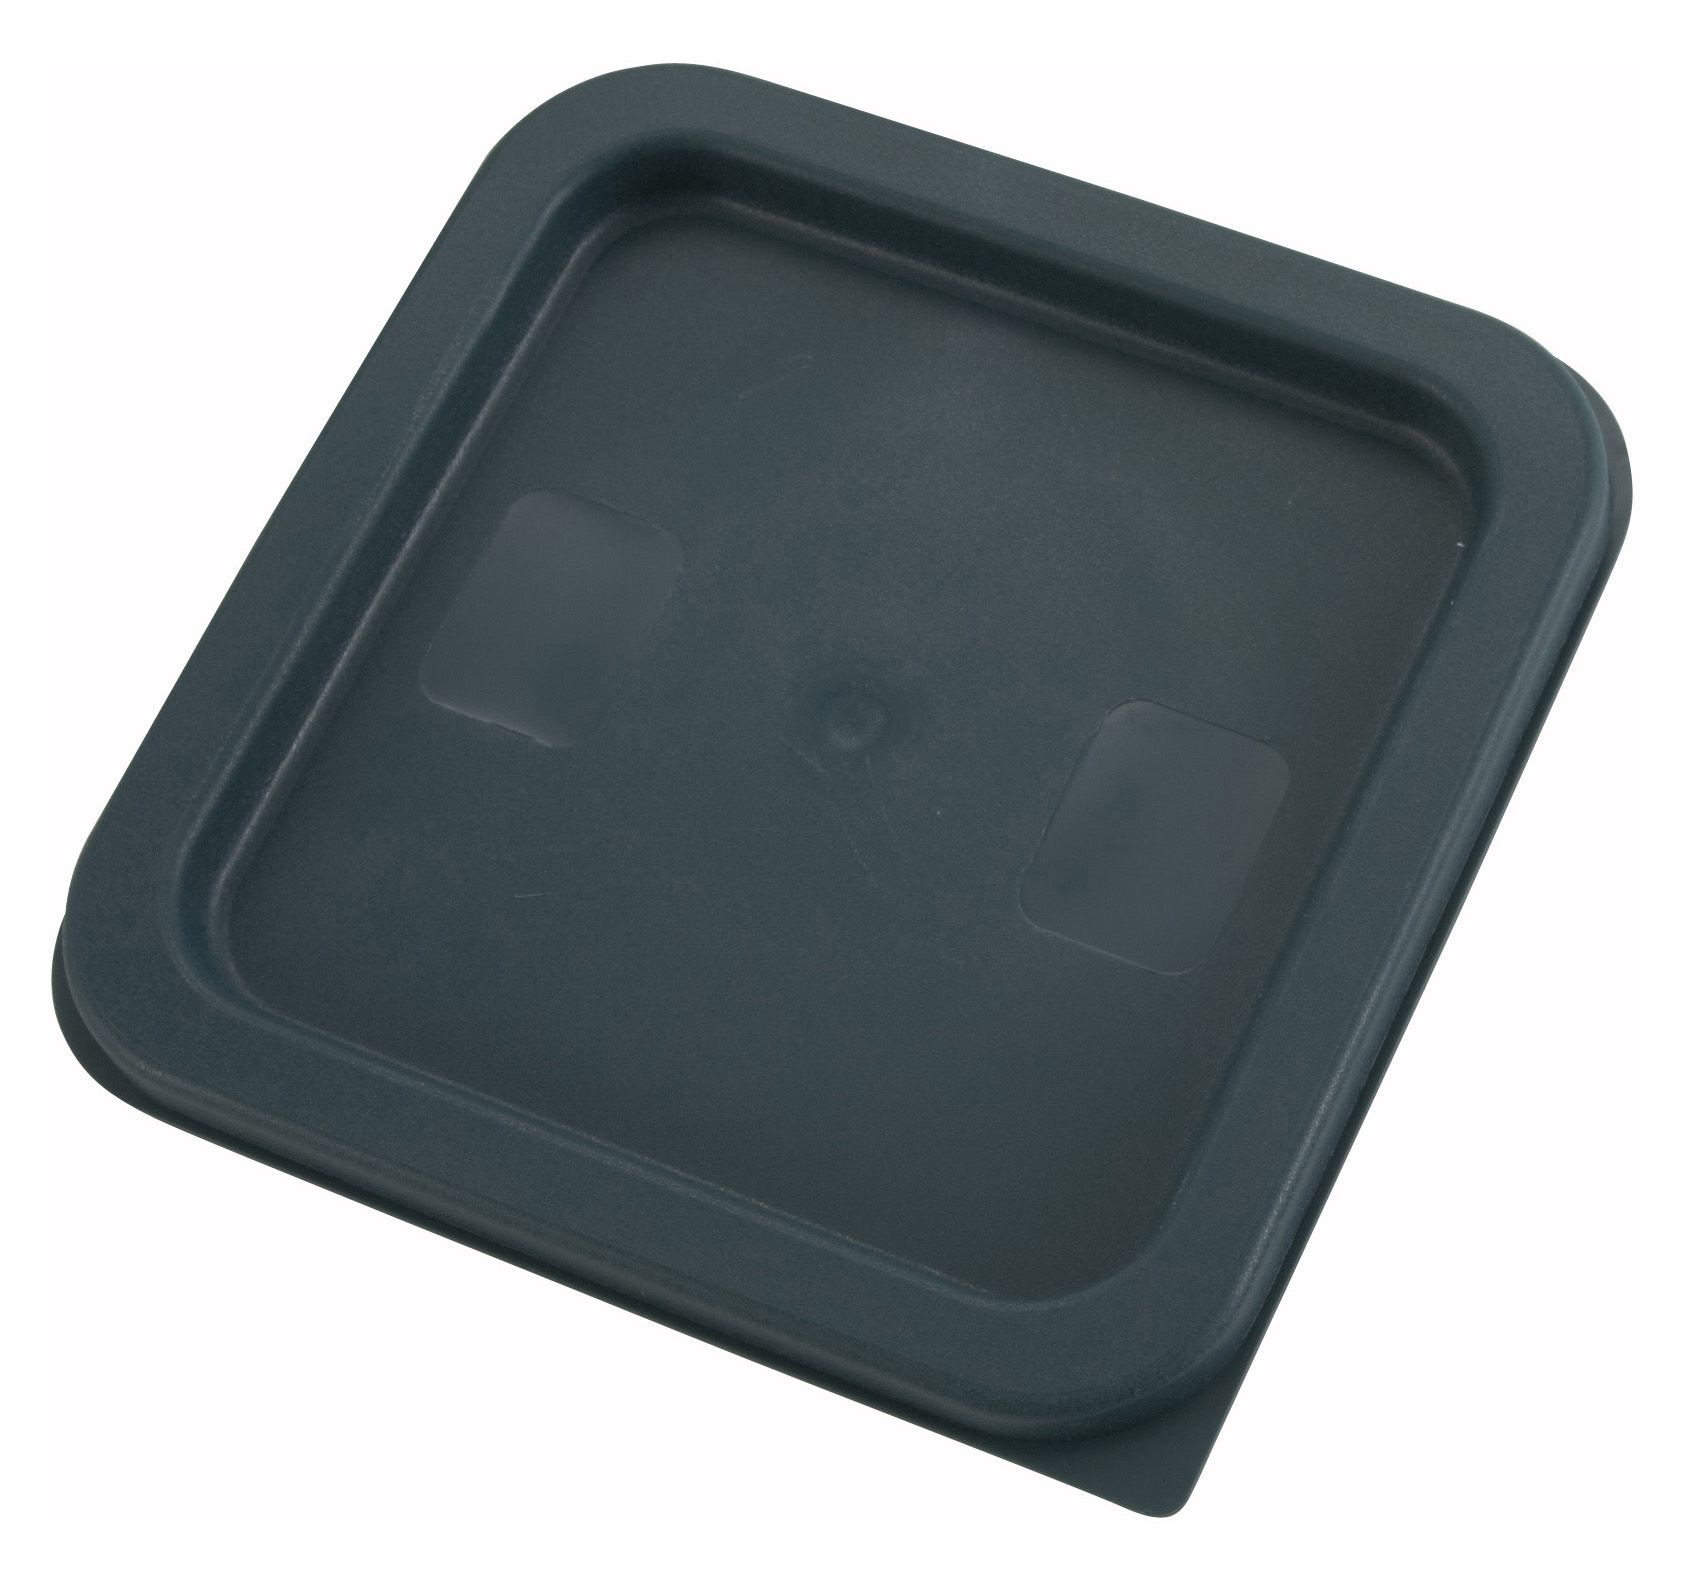 Winco PECC-24 Green Container Cover fits 2 and 4 Qt. Square Containers